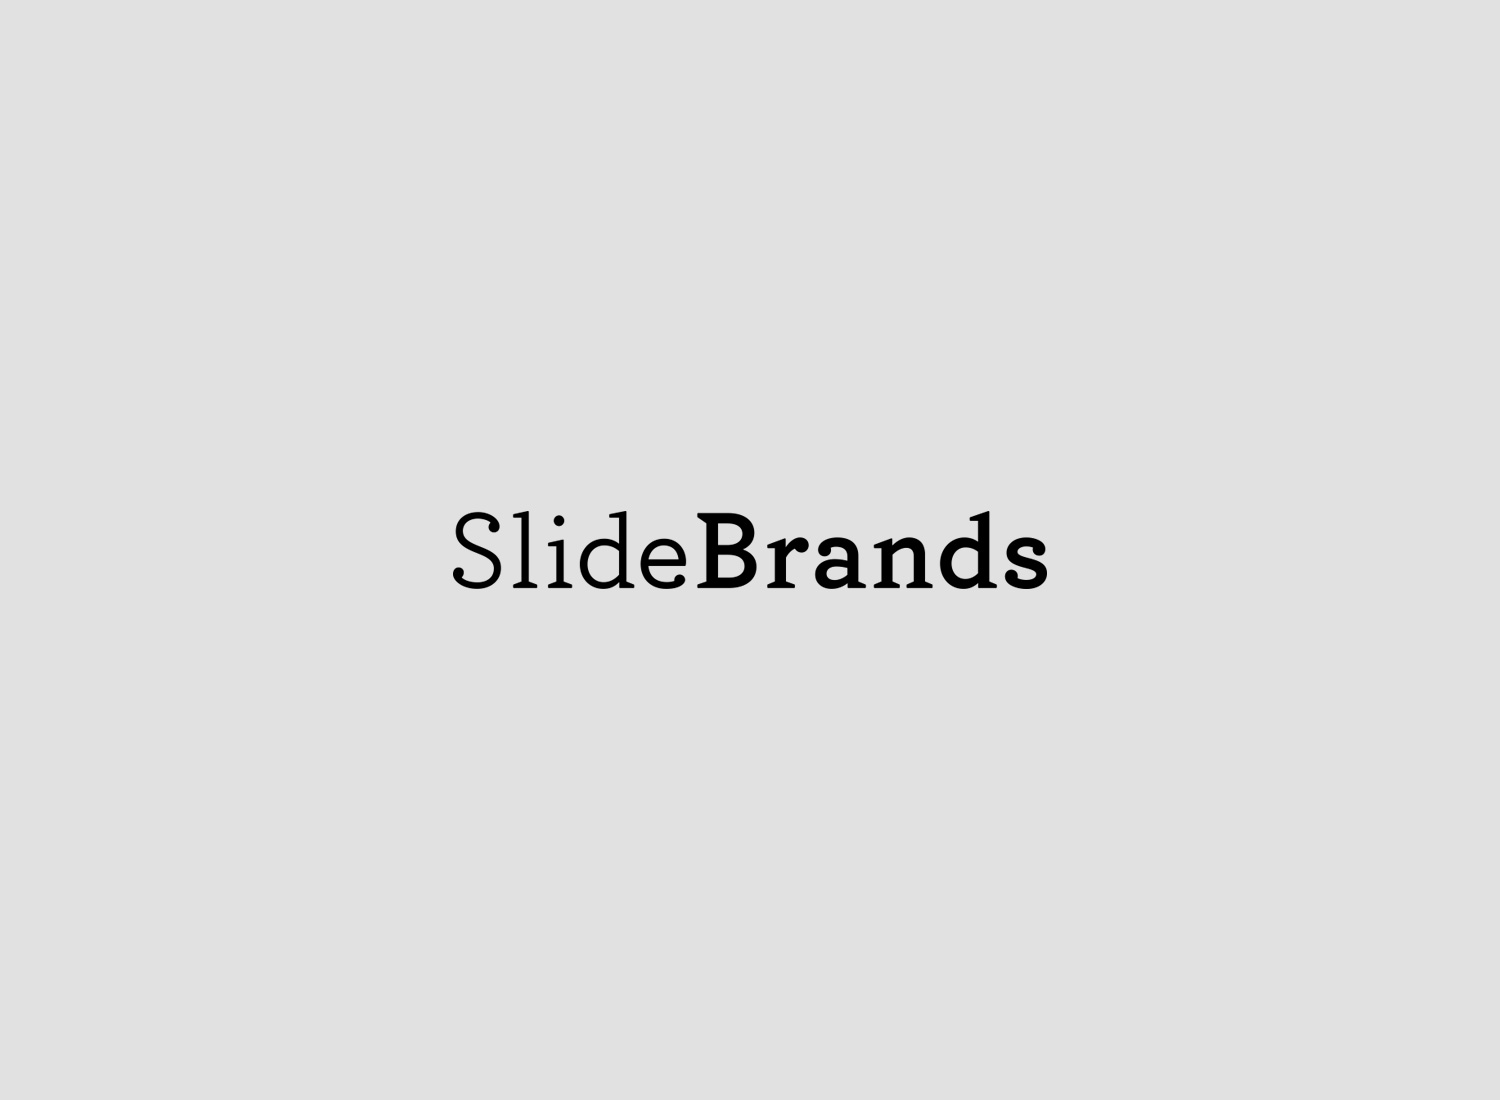 slidebrands_logo -